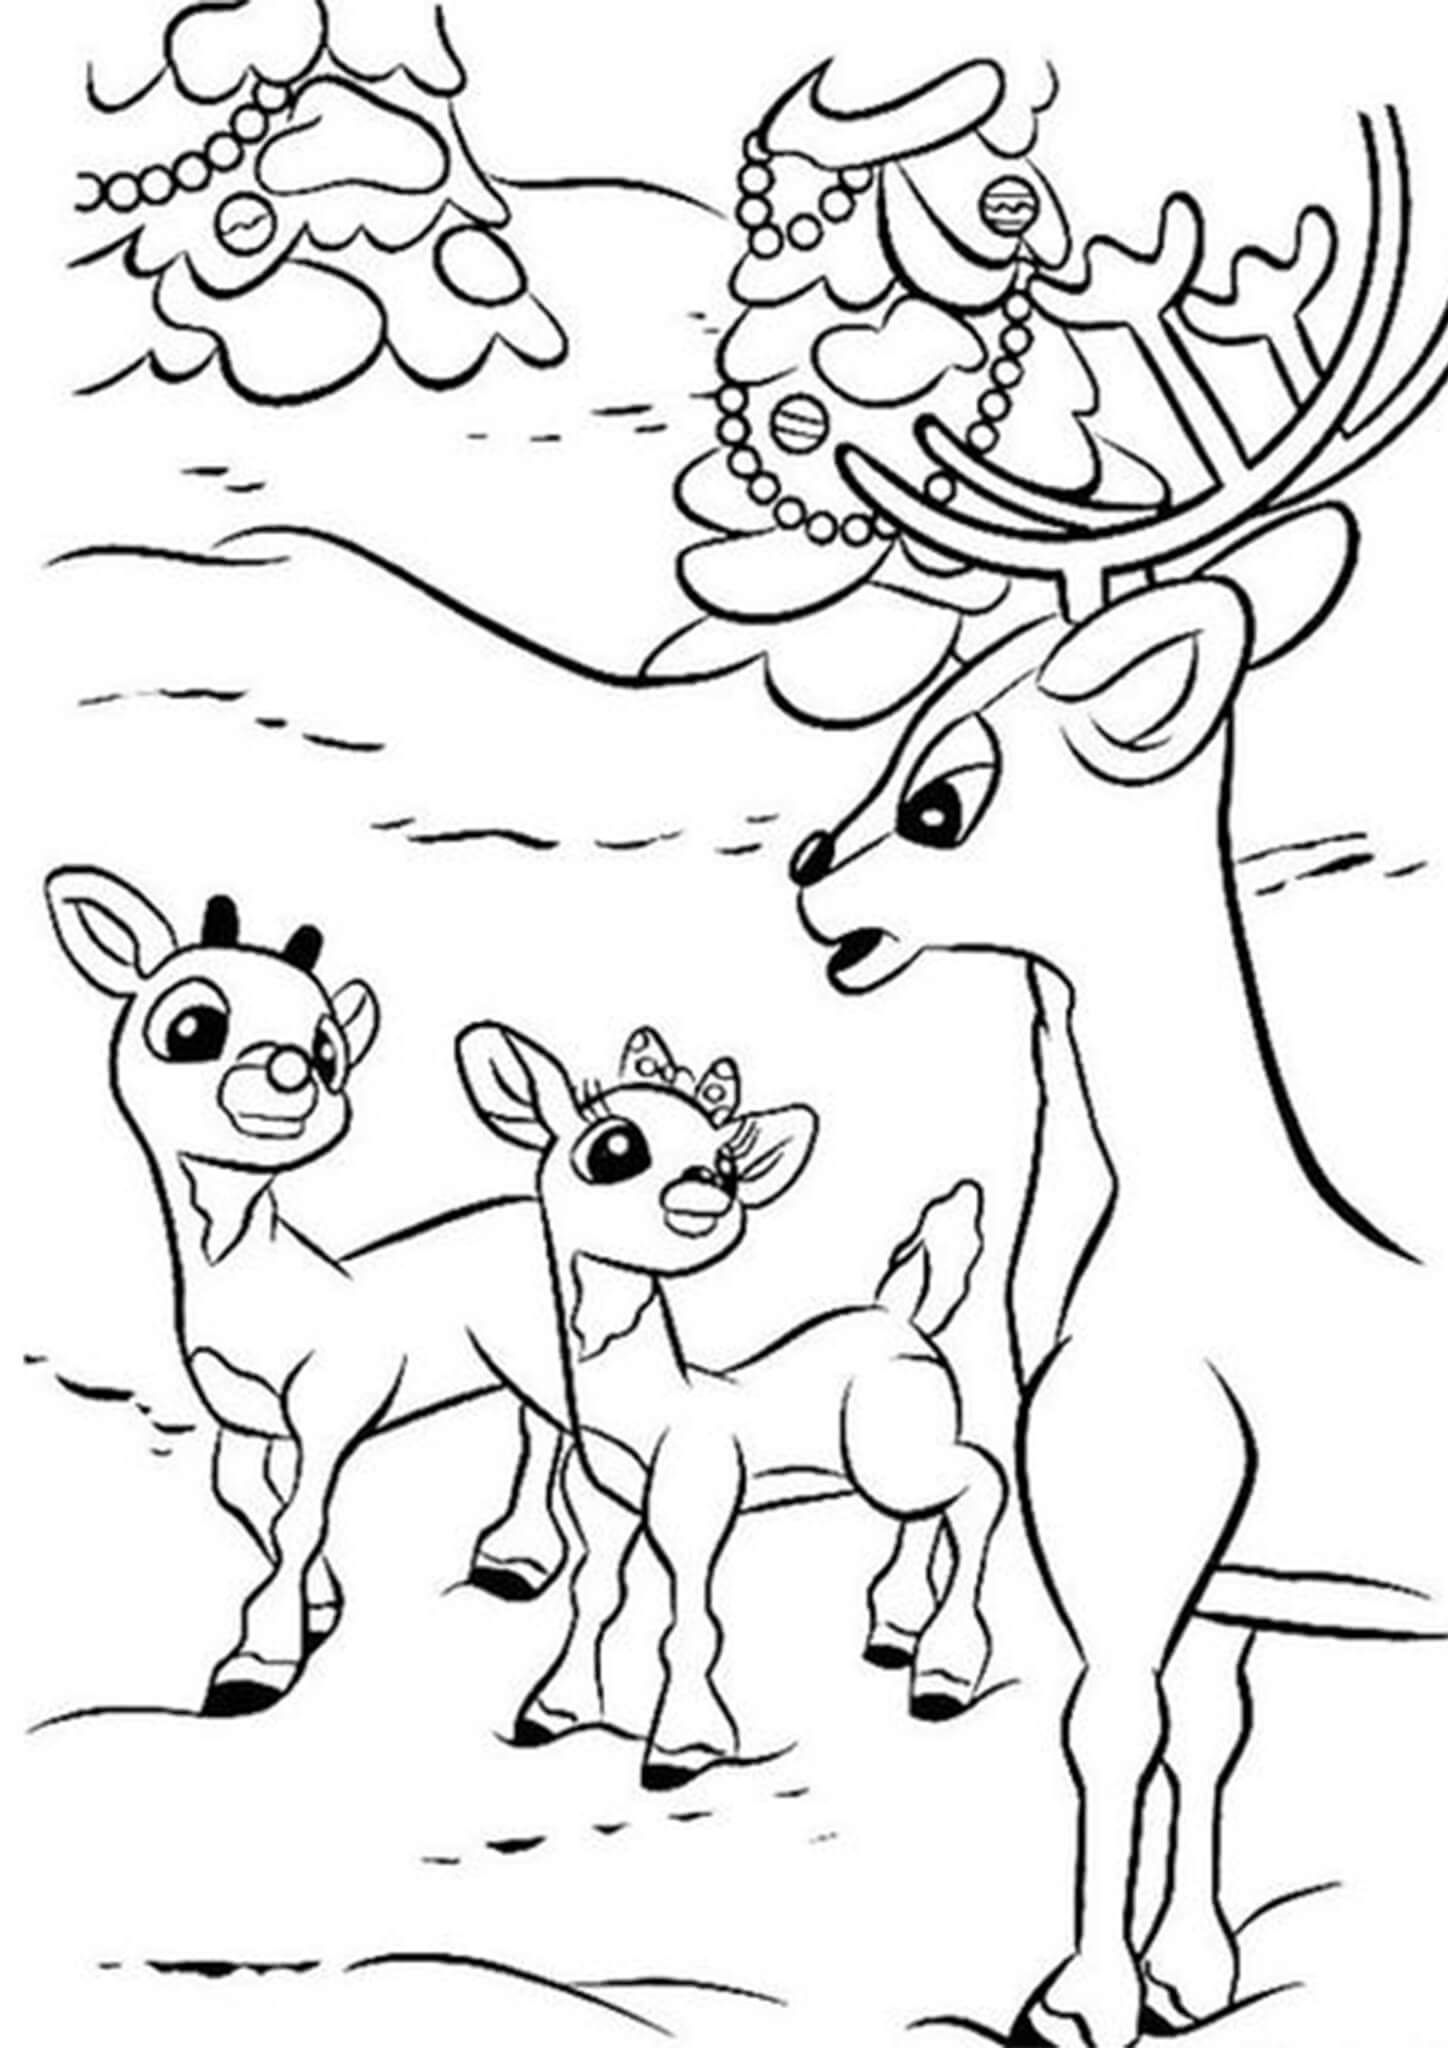 c3e706dbd622dea4955a92473cdce26b » Rudolph Coloring Pages Free